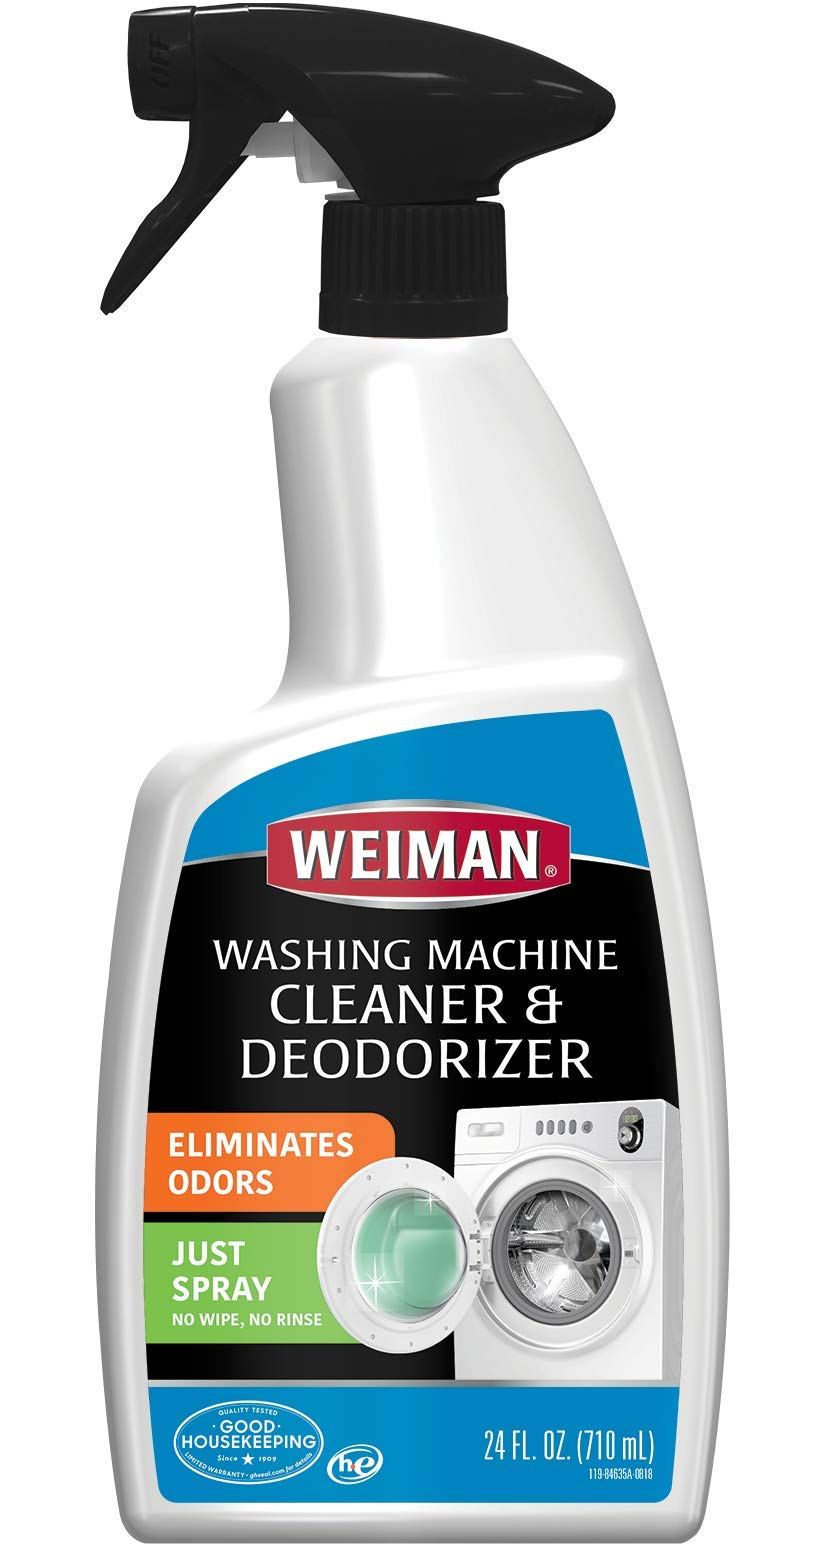 Weiman Washing Machine Cleaner and Deodorizer - Cleans Washing Machines Without Damaging Clothing - 24 Fl